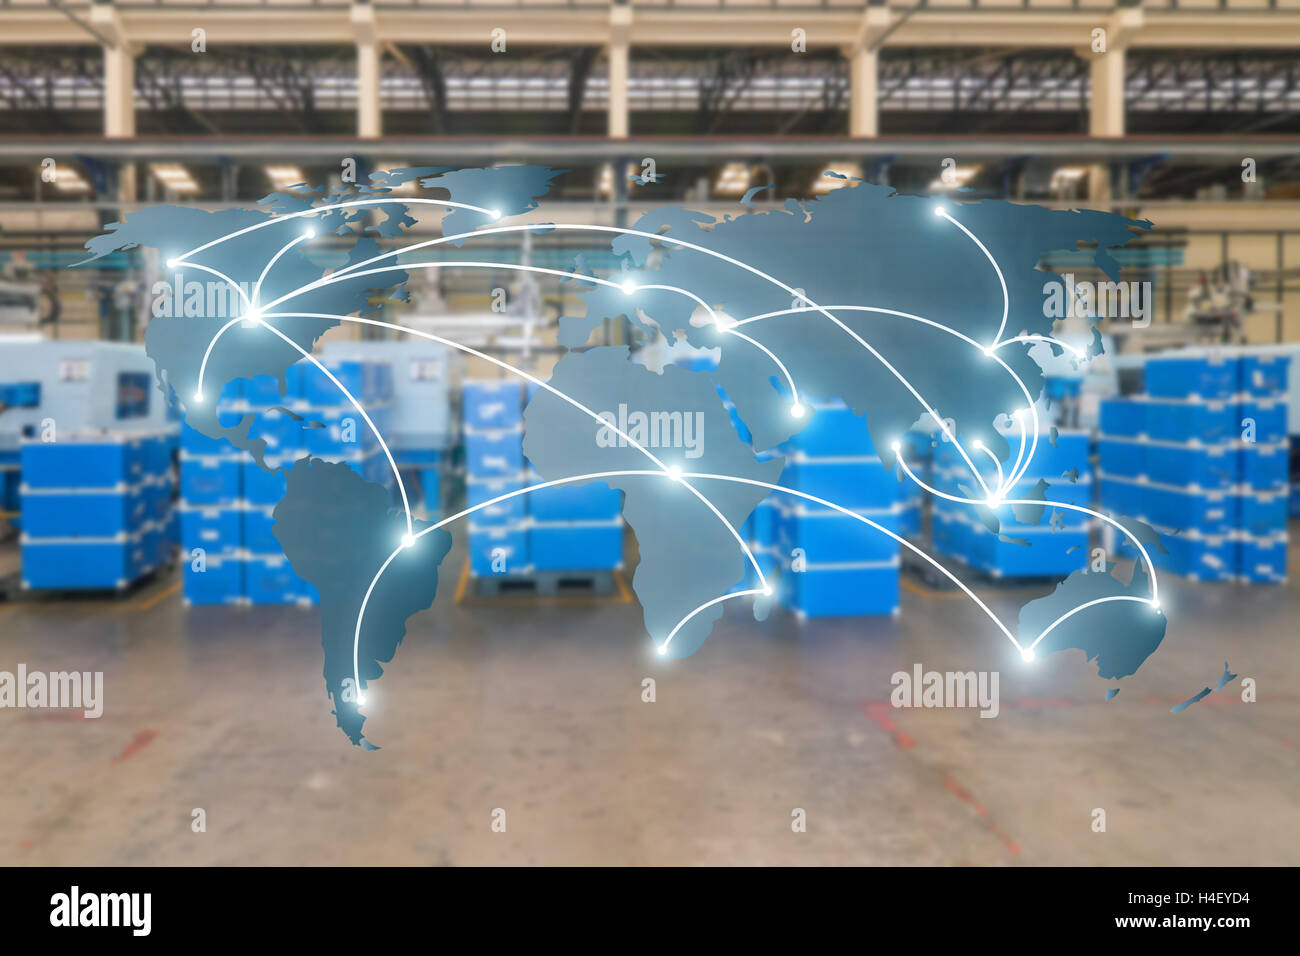 World international map connection connect network with blurred distribution logistic cargo warehouse background, - Stock Image